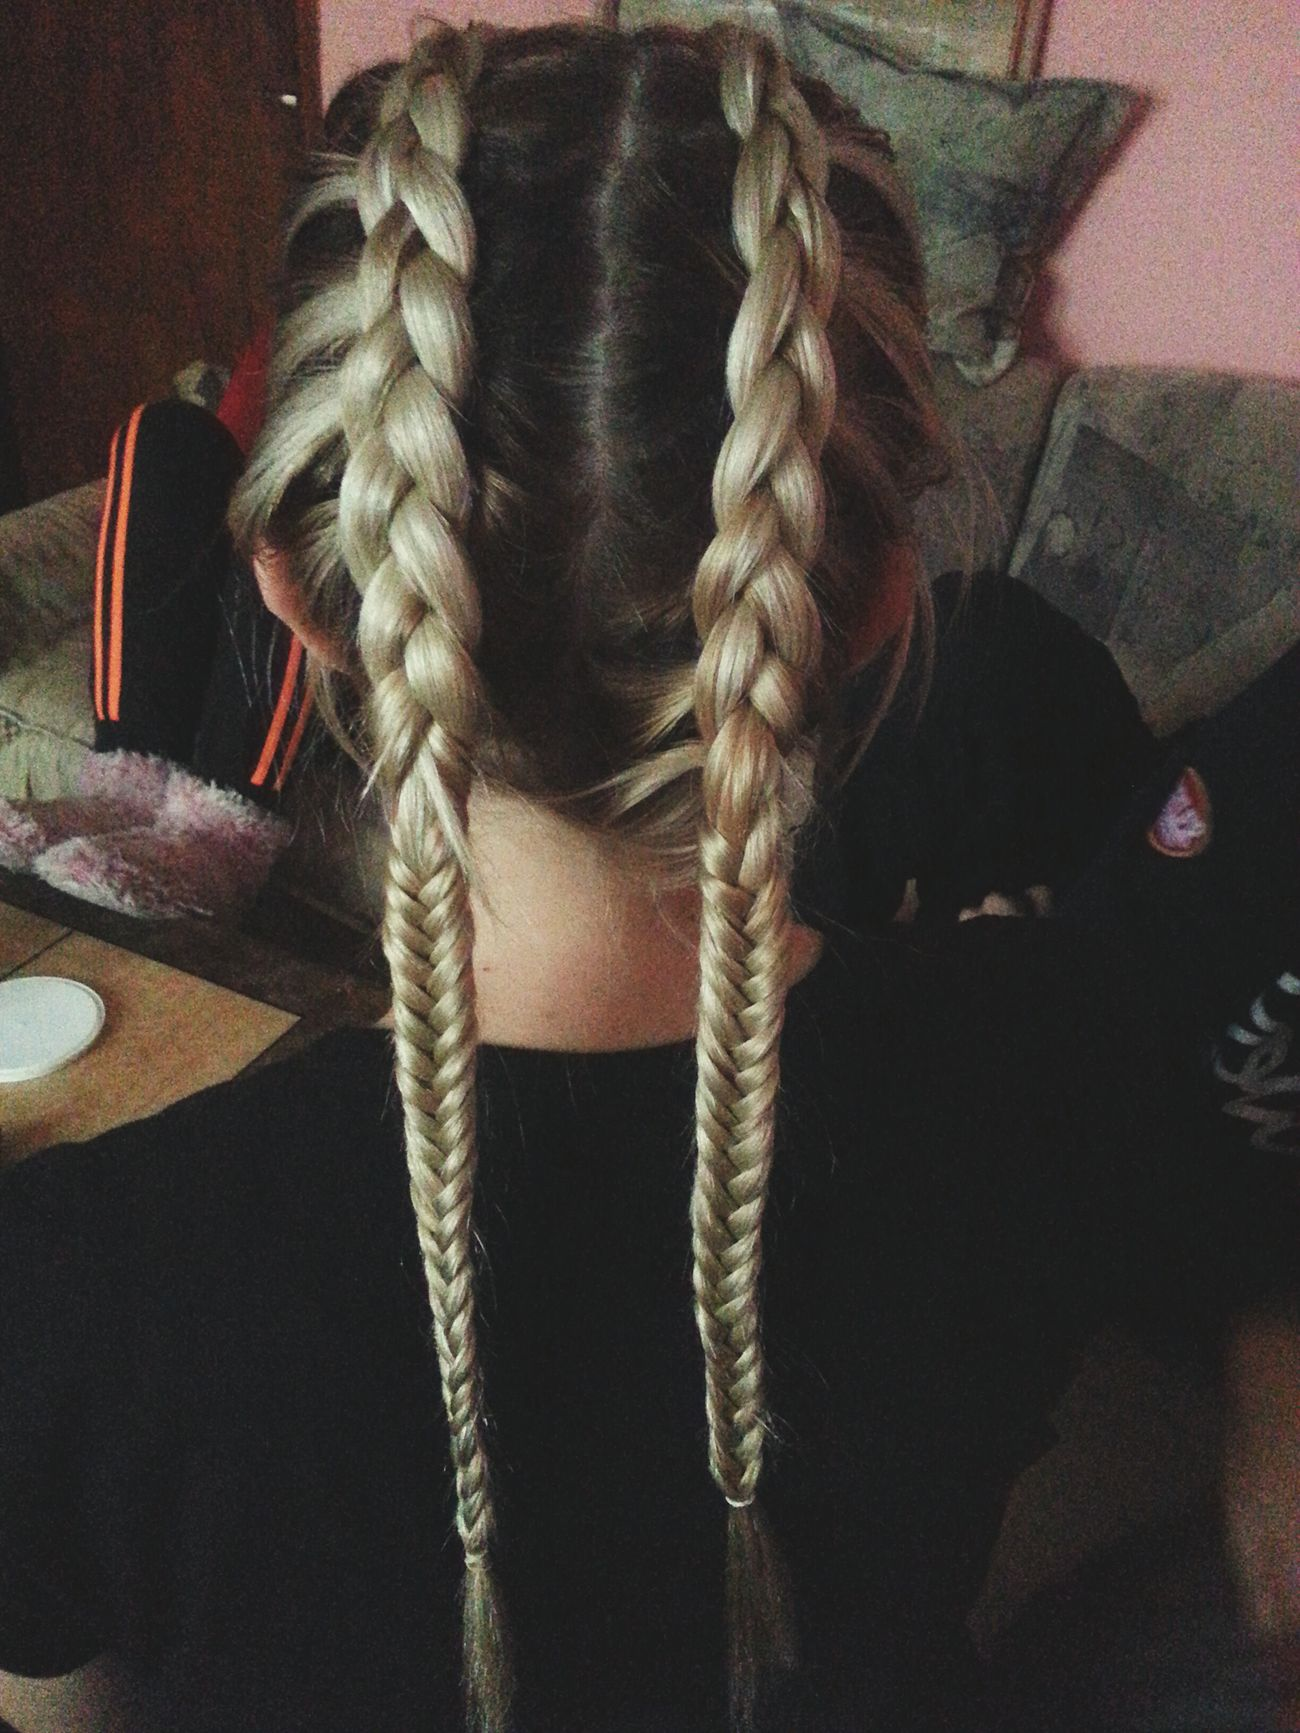 Blonde Hair Dutch Braid Fishtail Braid Ombre Ombre Hair Sarajevo